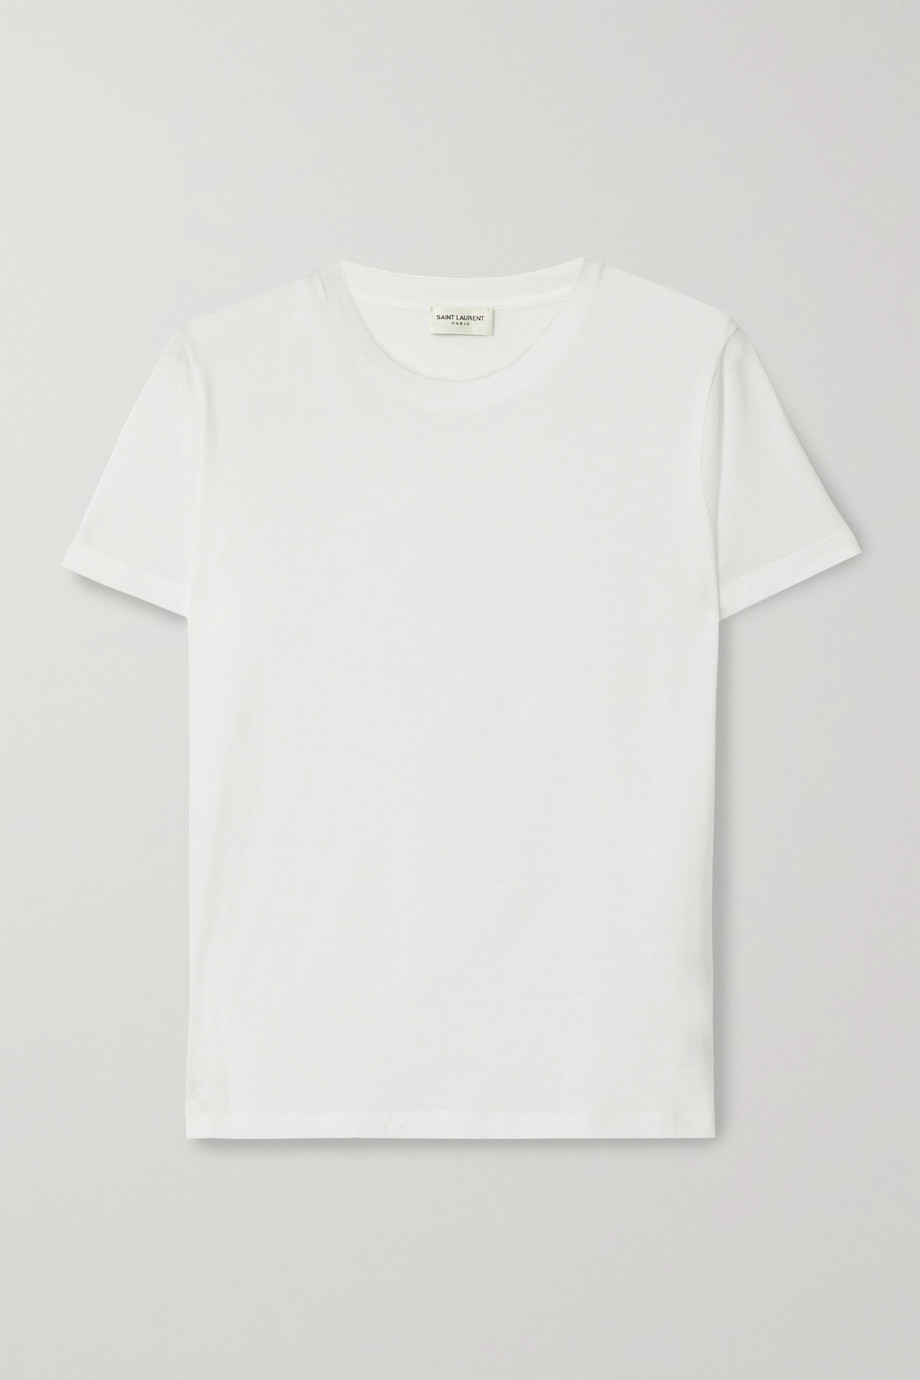 SAINT LAURENT Essentials appliquéd cotton-jersey T-shirt